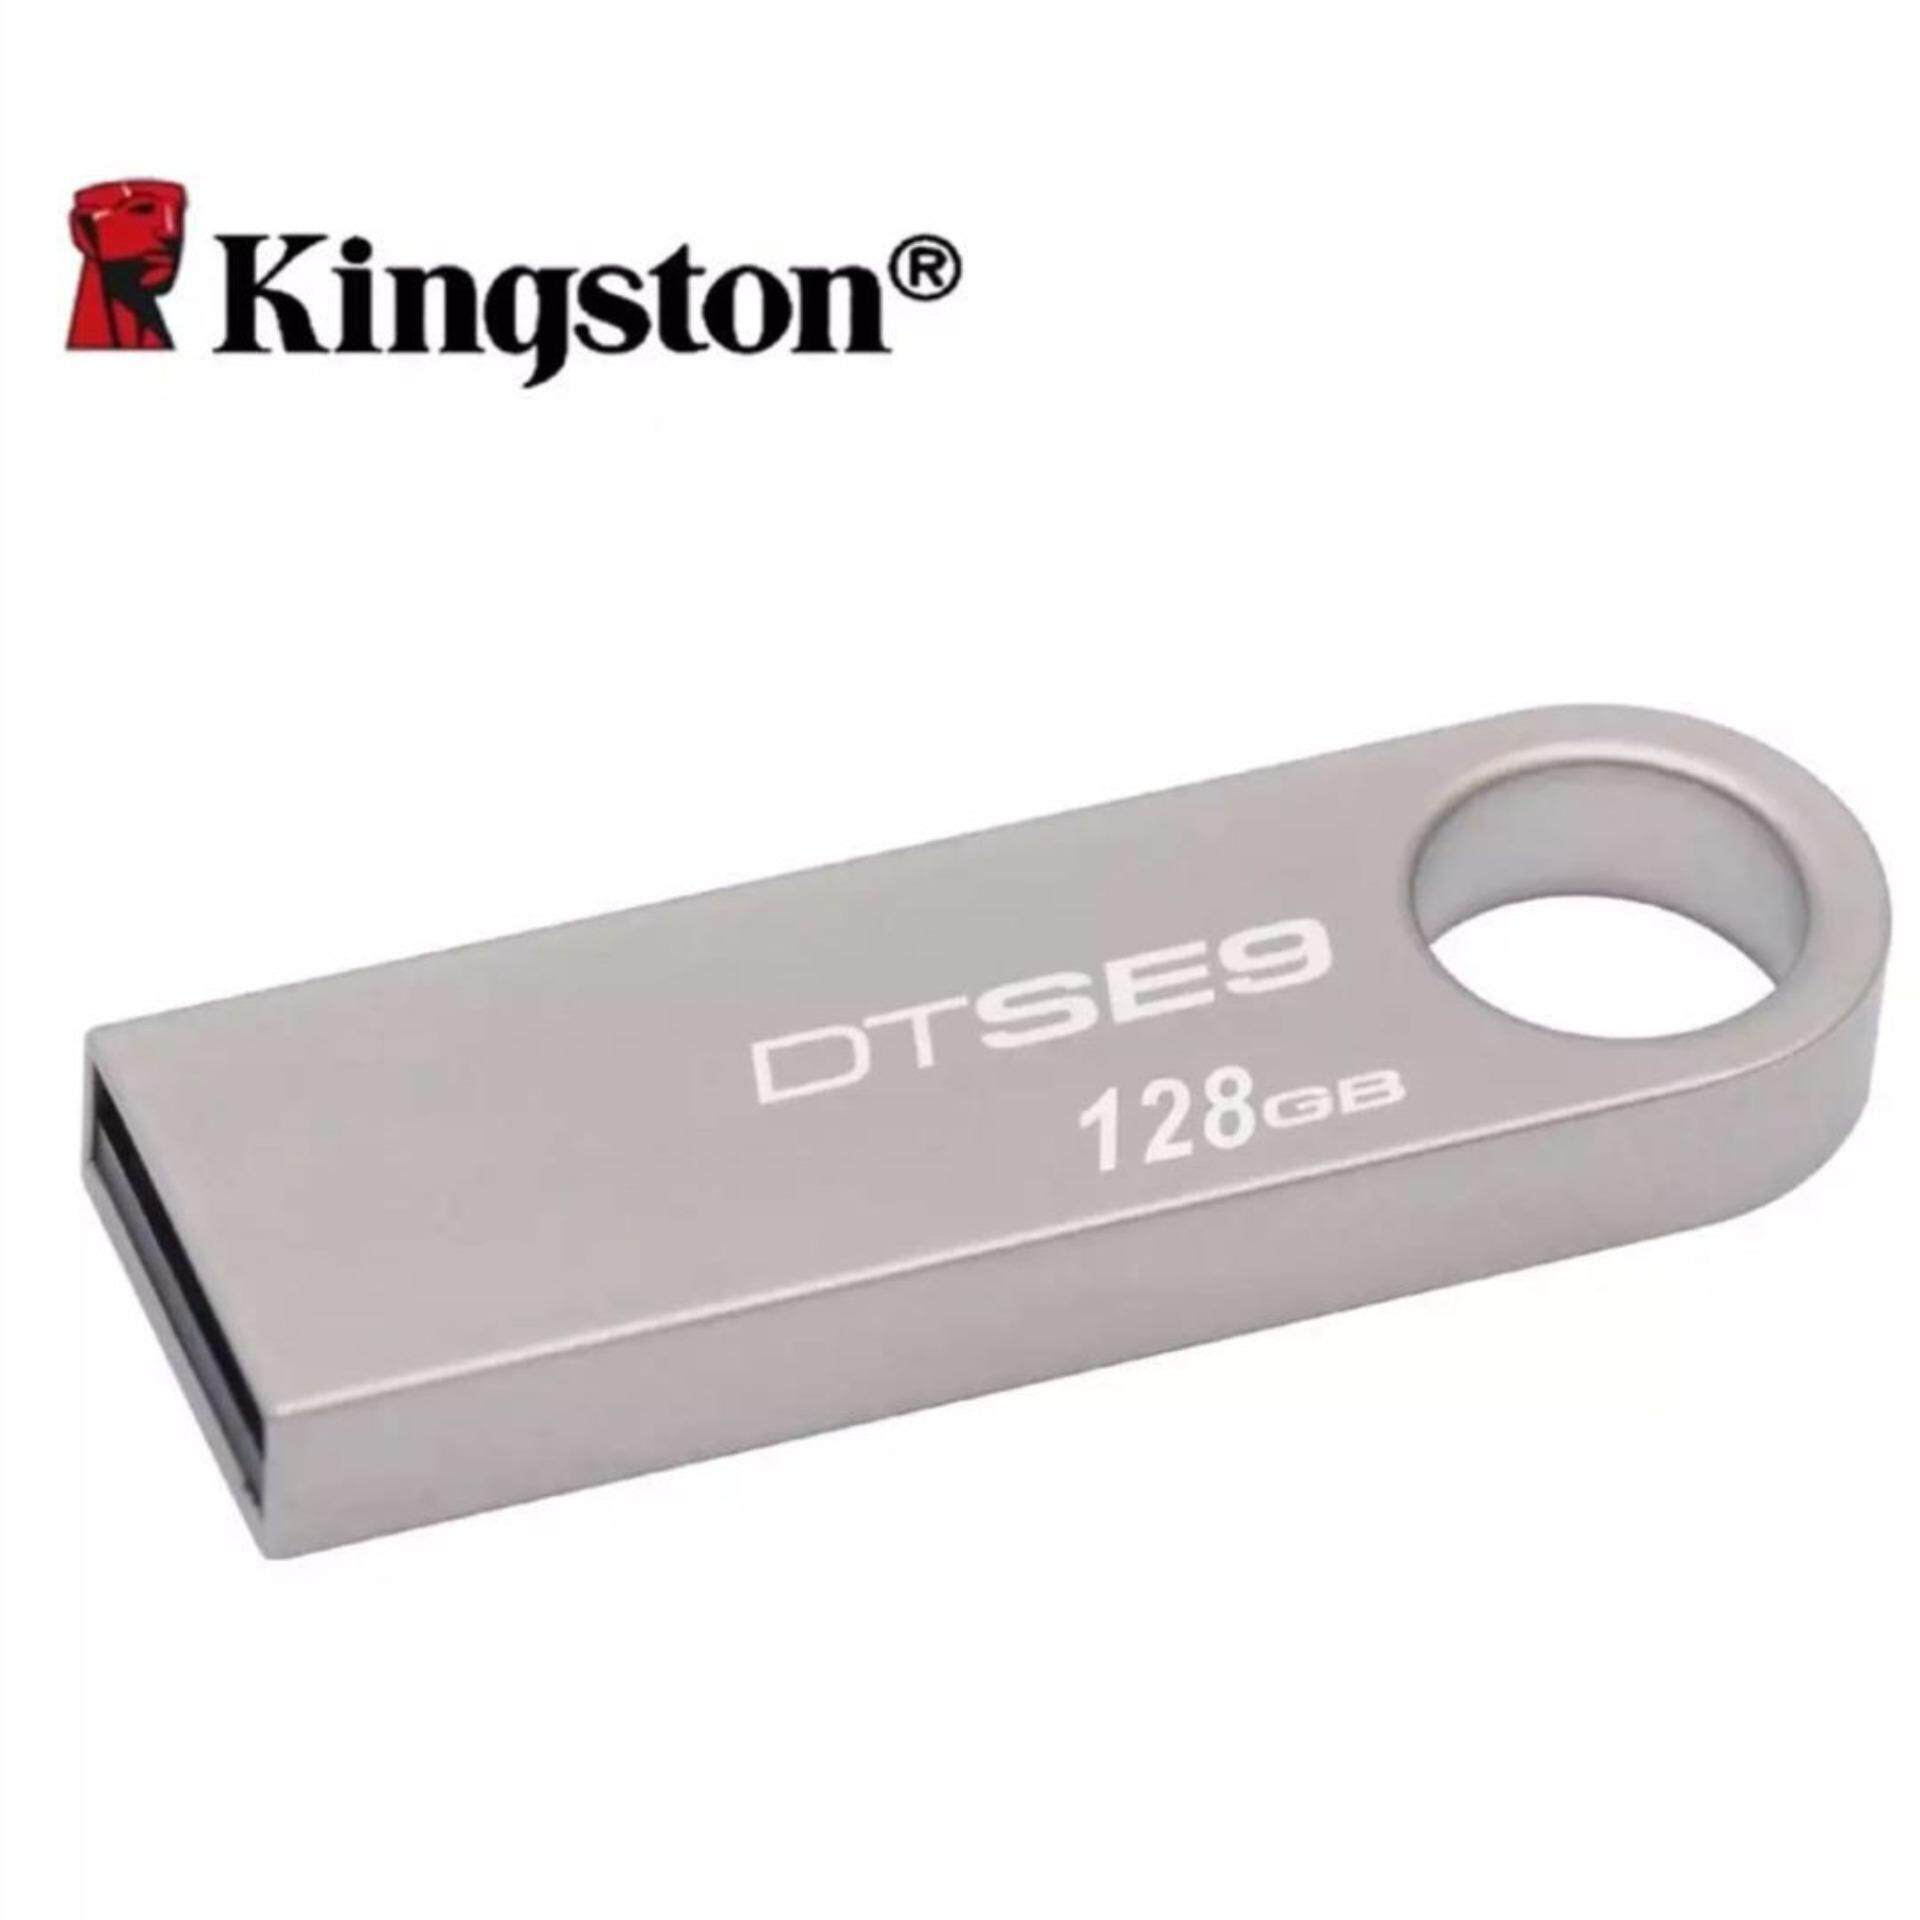 Kingston USB Flash drive Thumb drive DataTraveler SE9 - 128GB